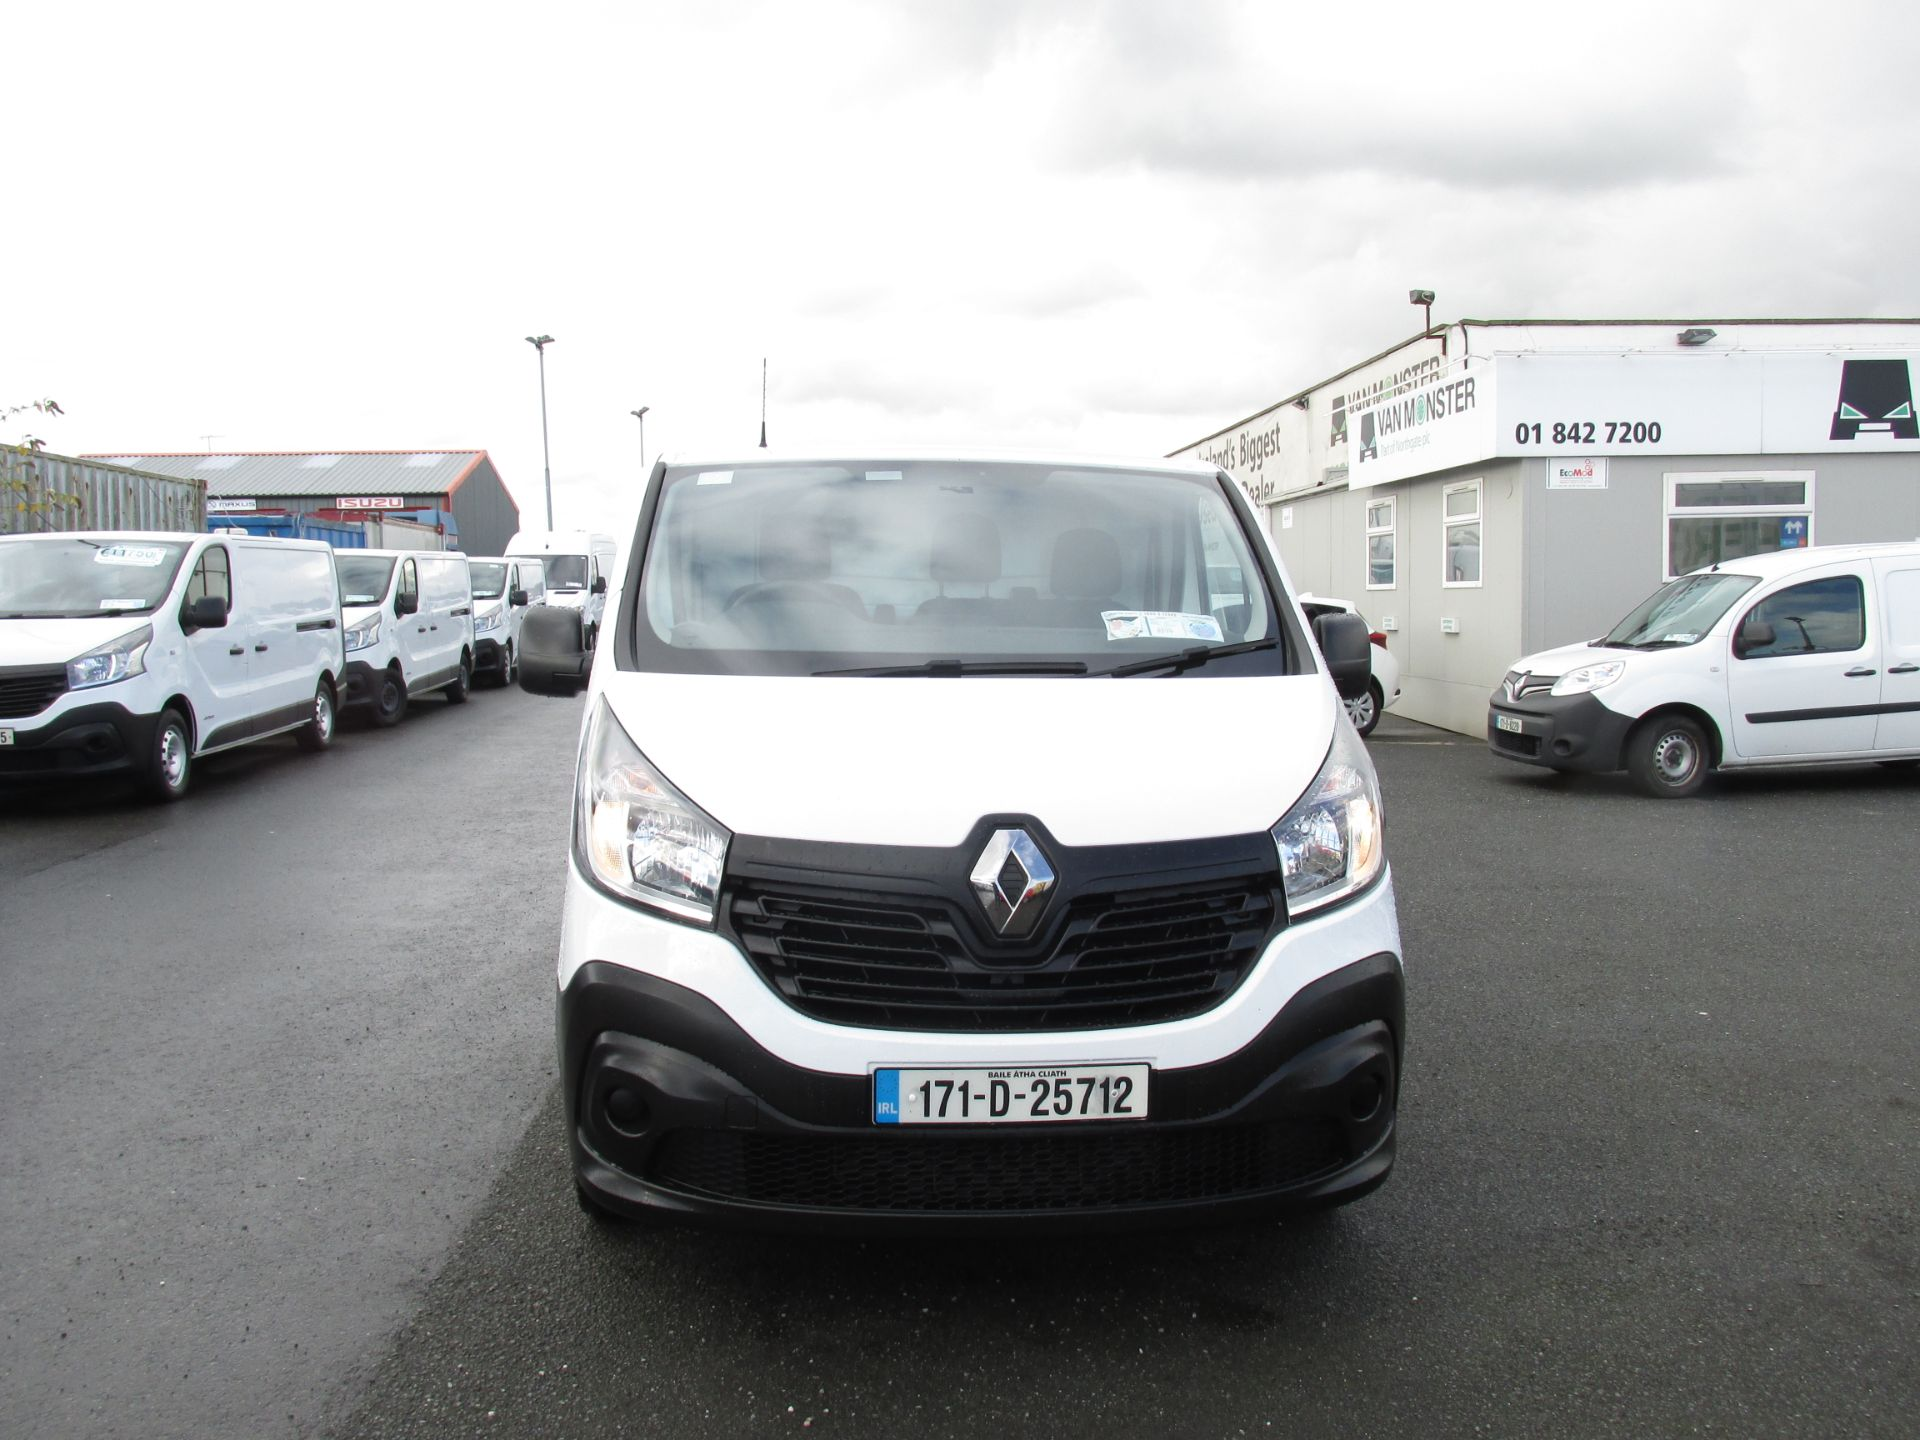 2017 Renault Trafic LL29 DCI 120 Business 3DR (171D25712) Image 2